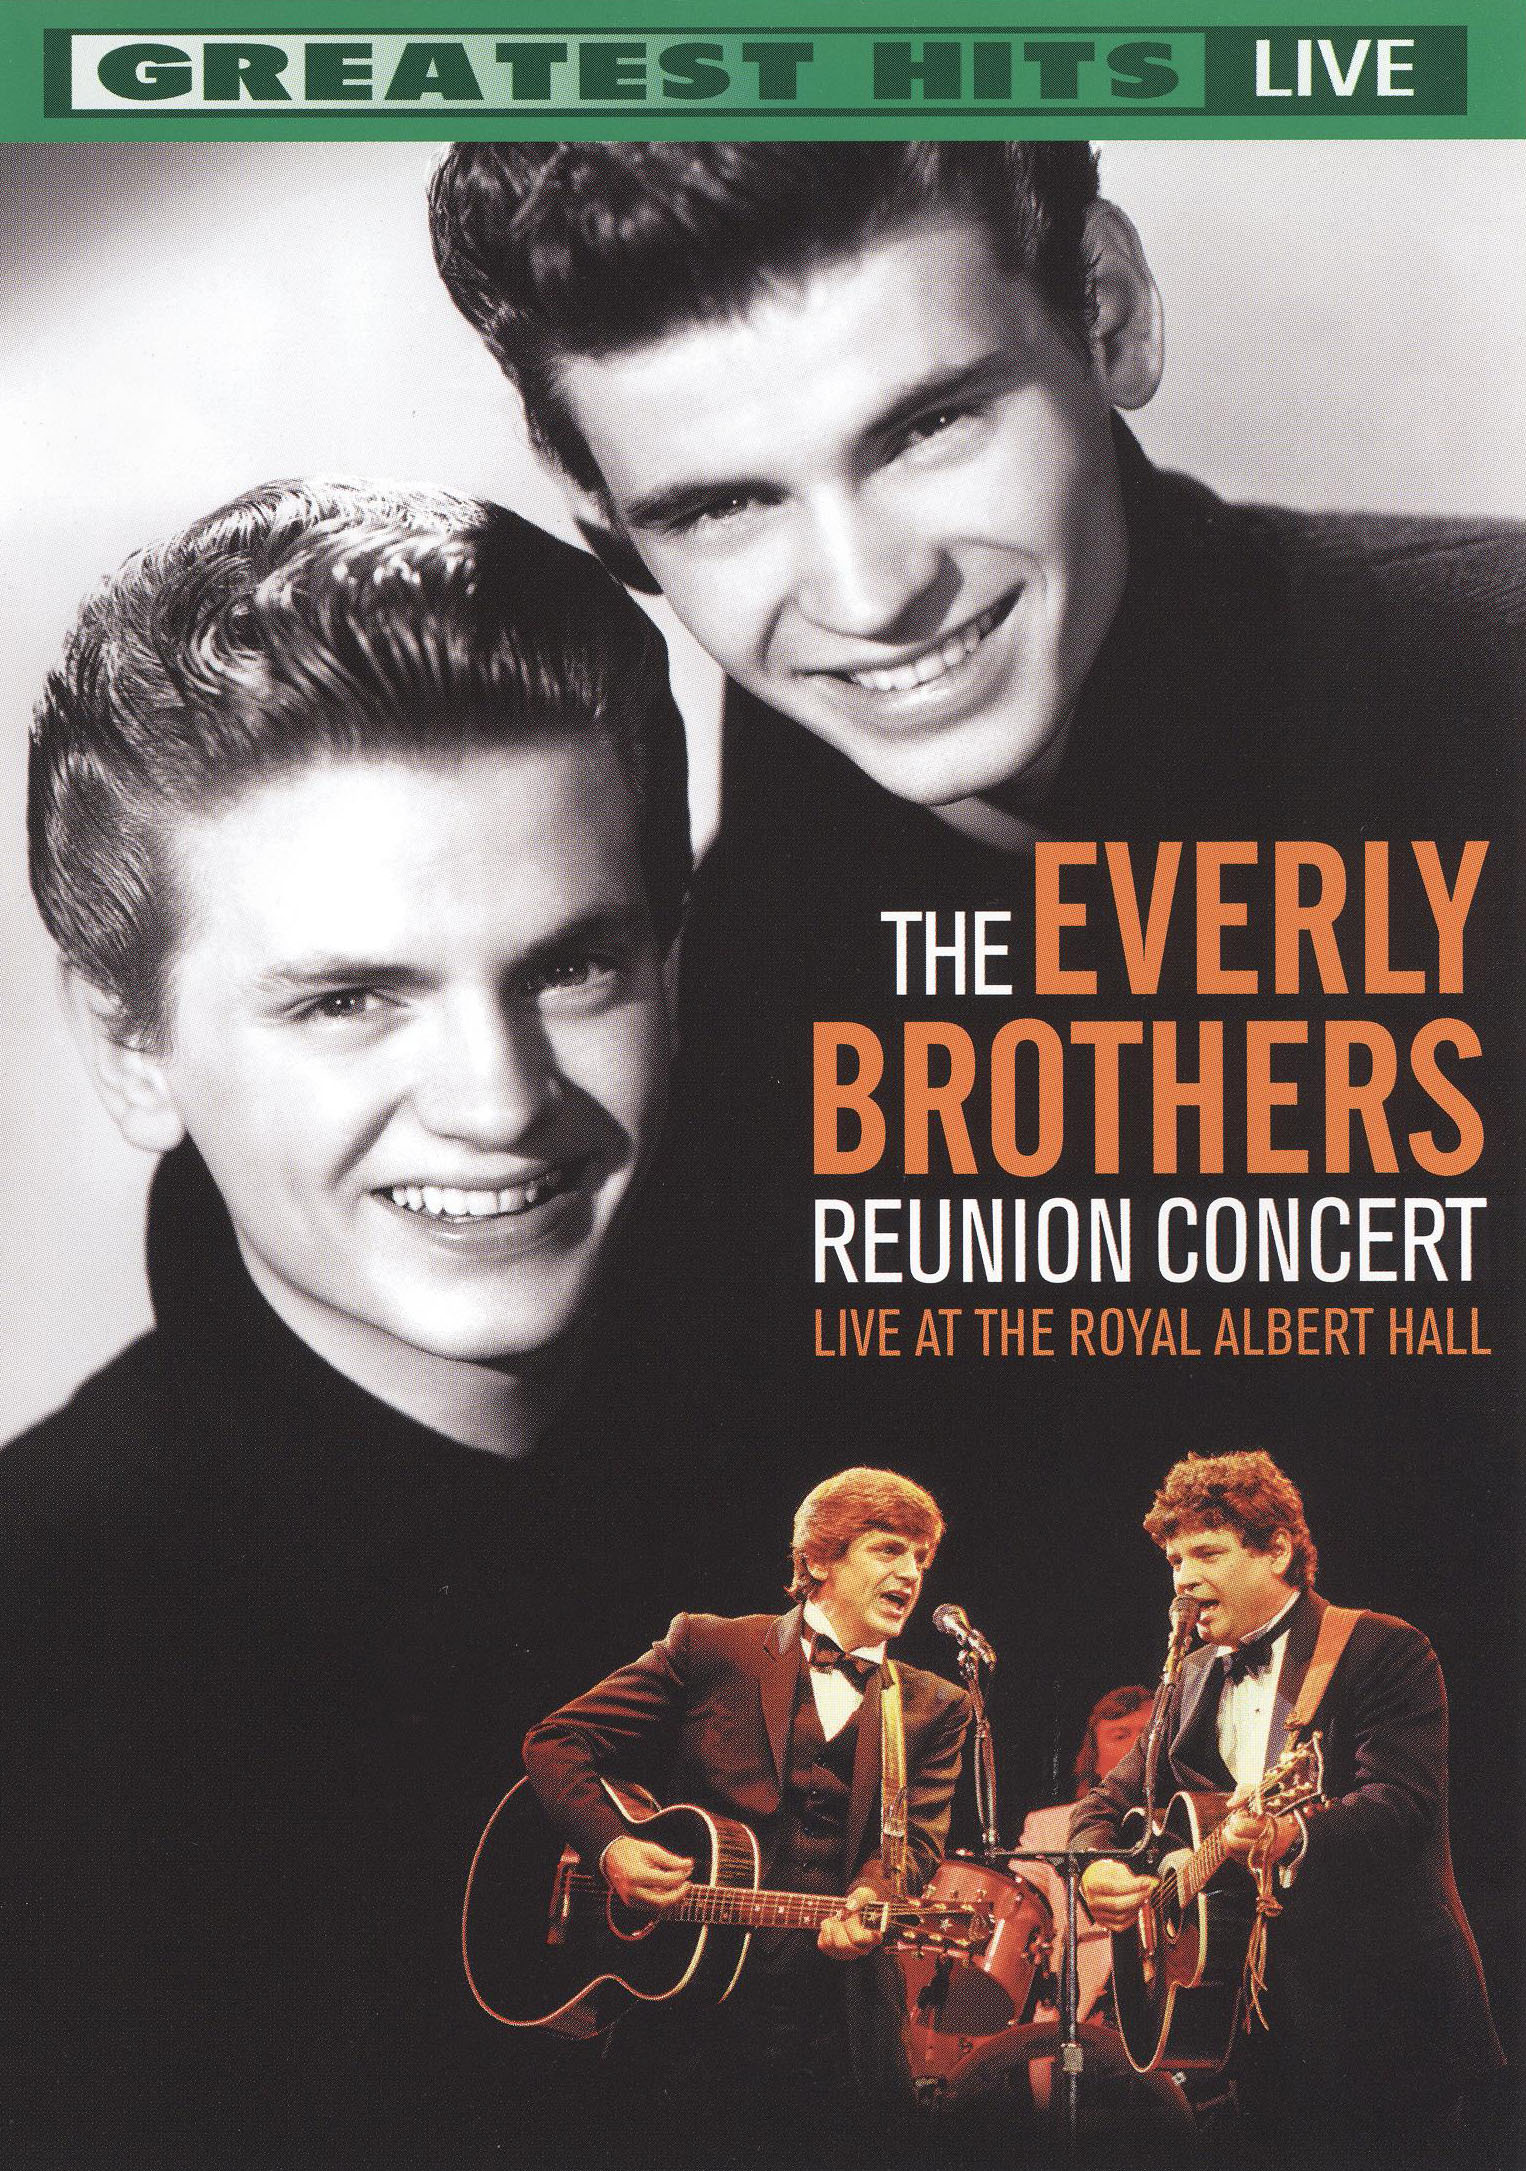 The Everly Brothers Reunion Concert: Live from the Royal Albert Hall